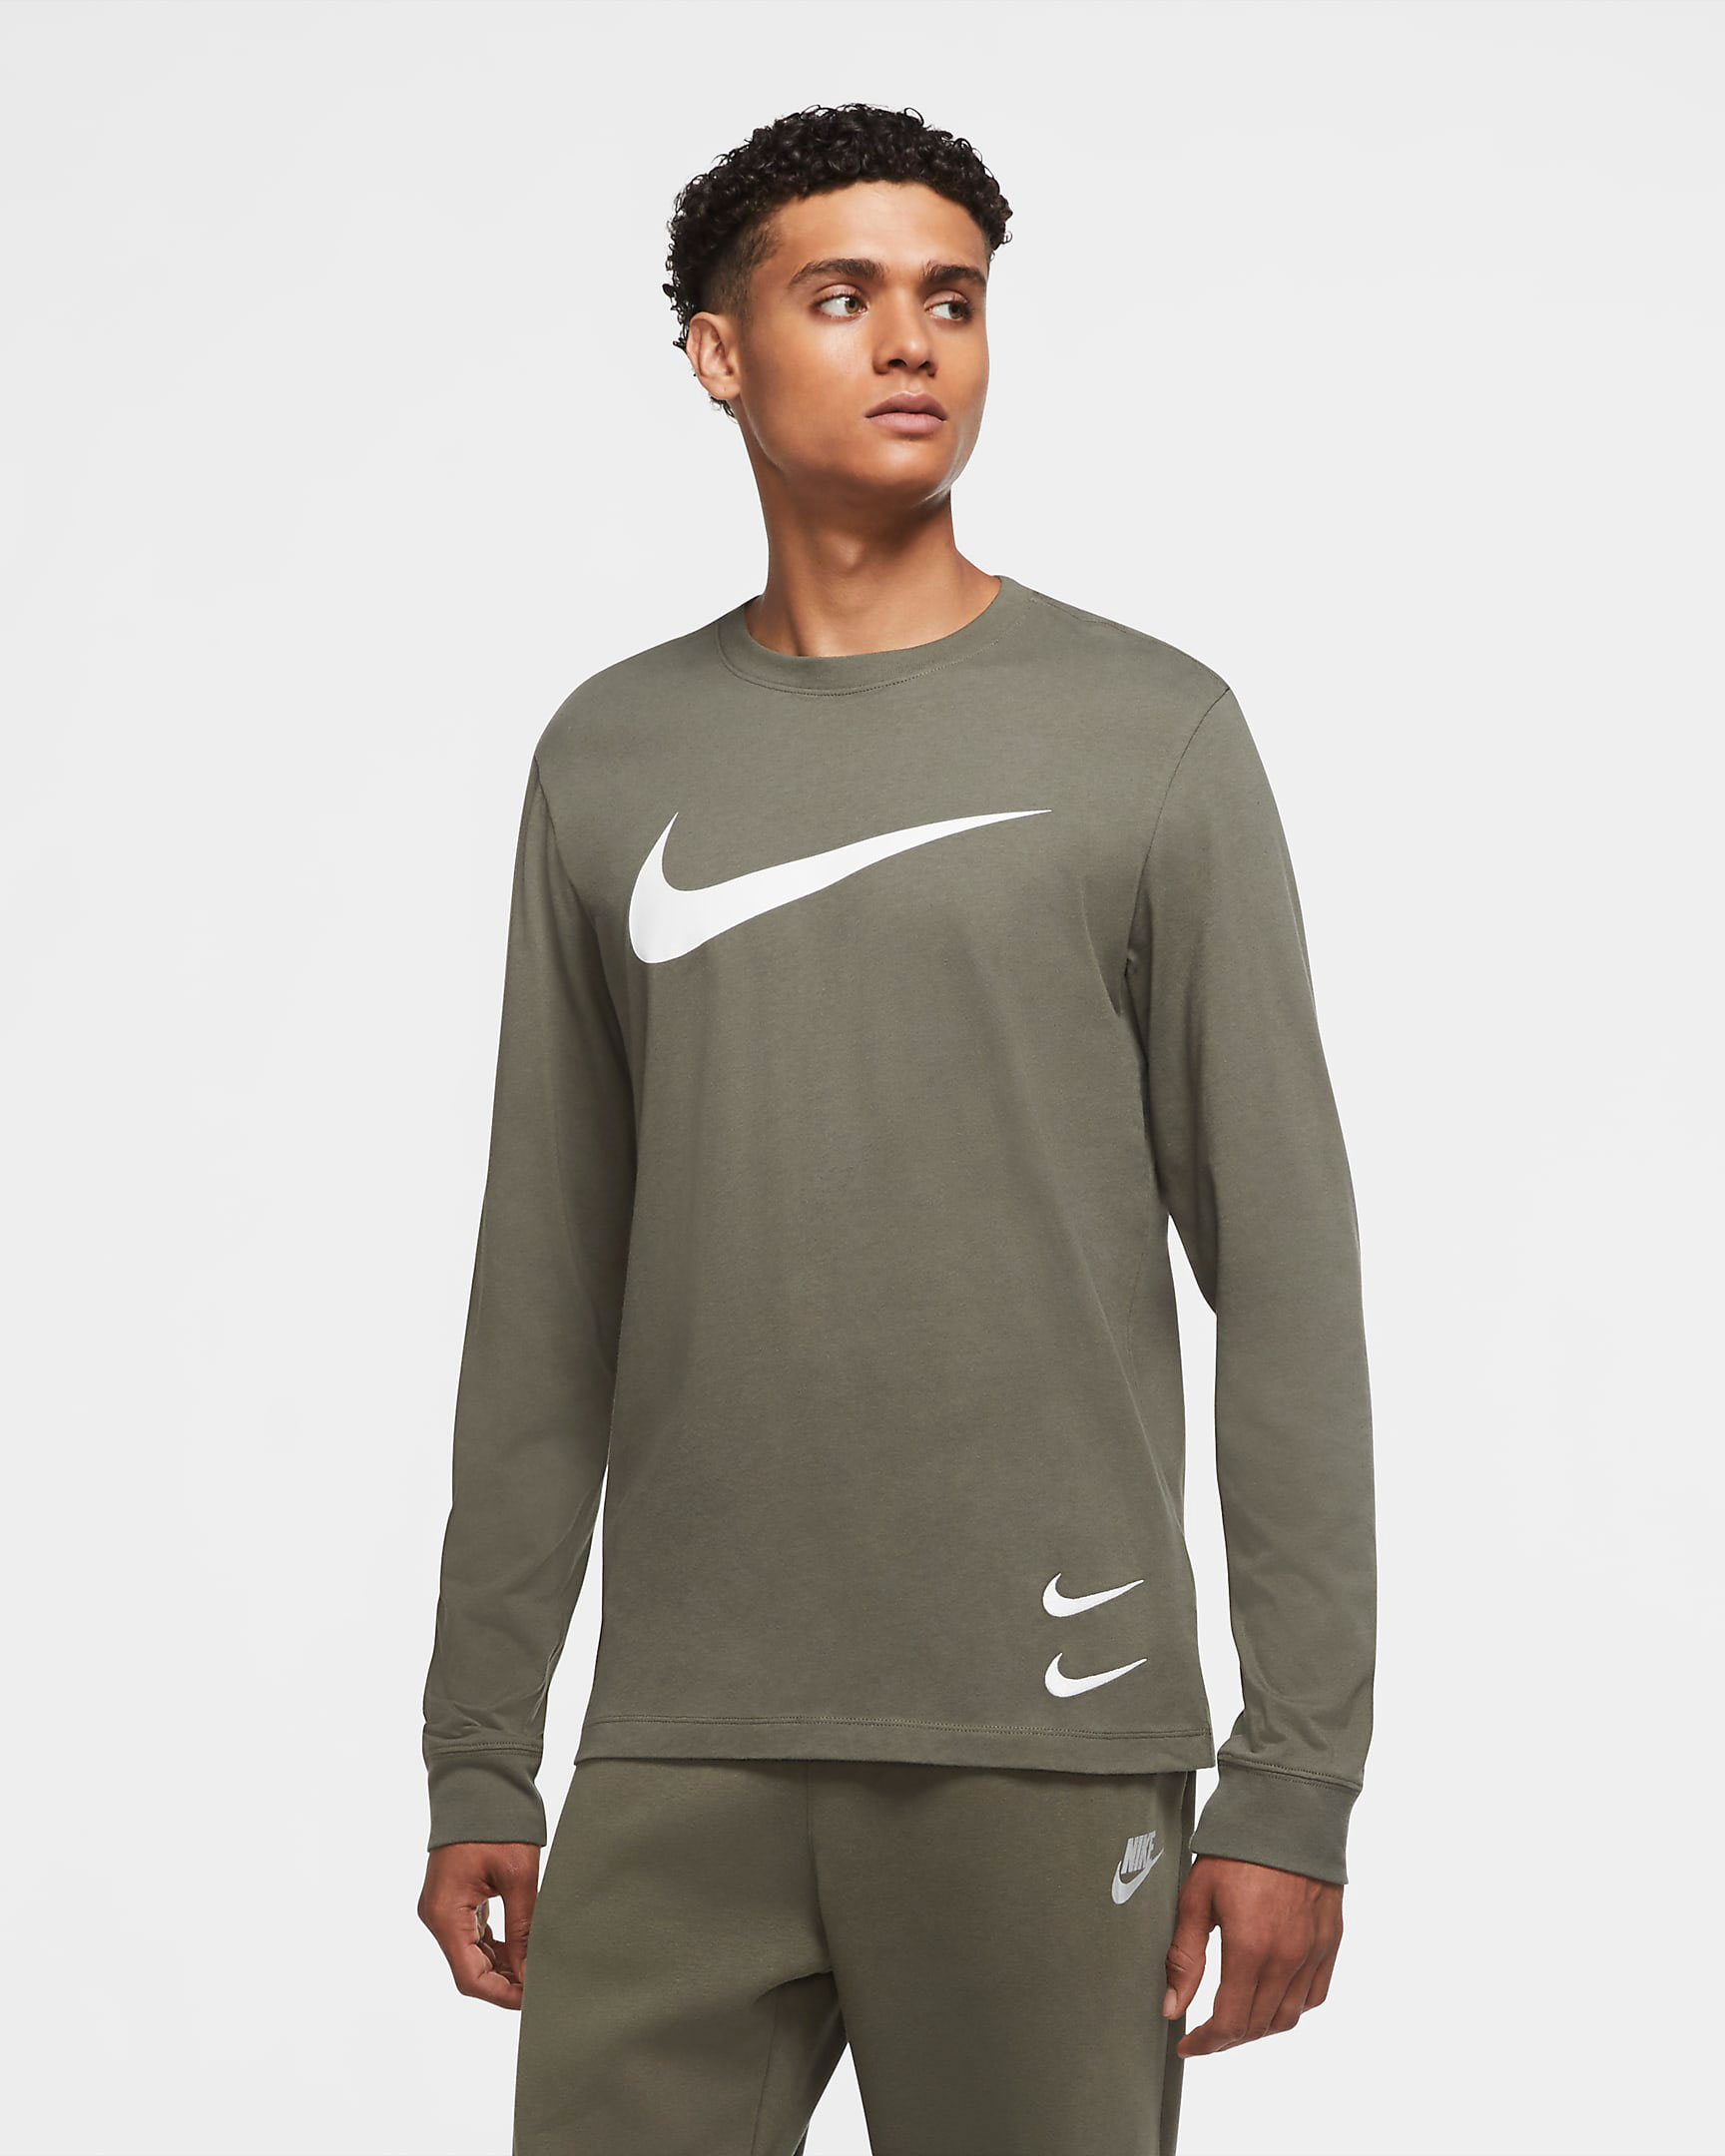 nike-sportswear-swoosh-long-sleeve-shirt-twilight-marsh-olive-green